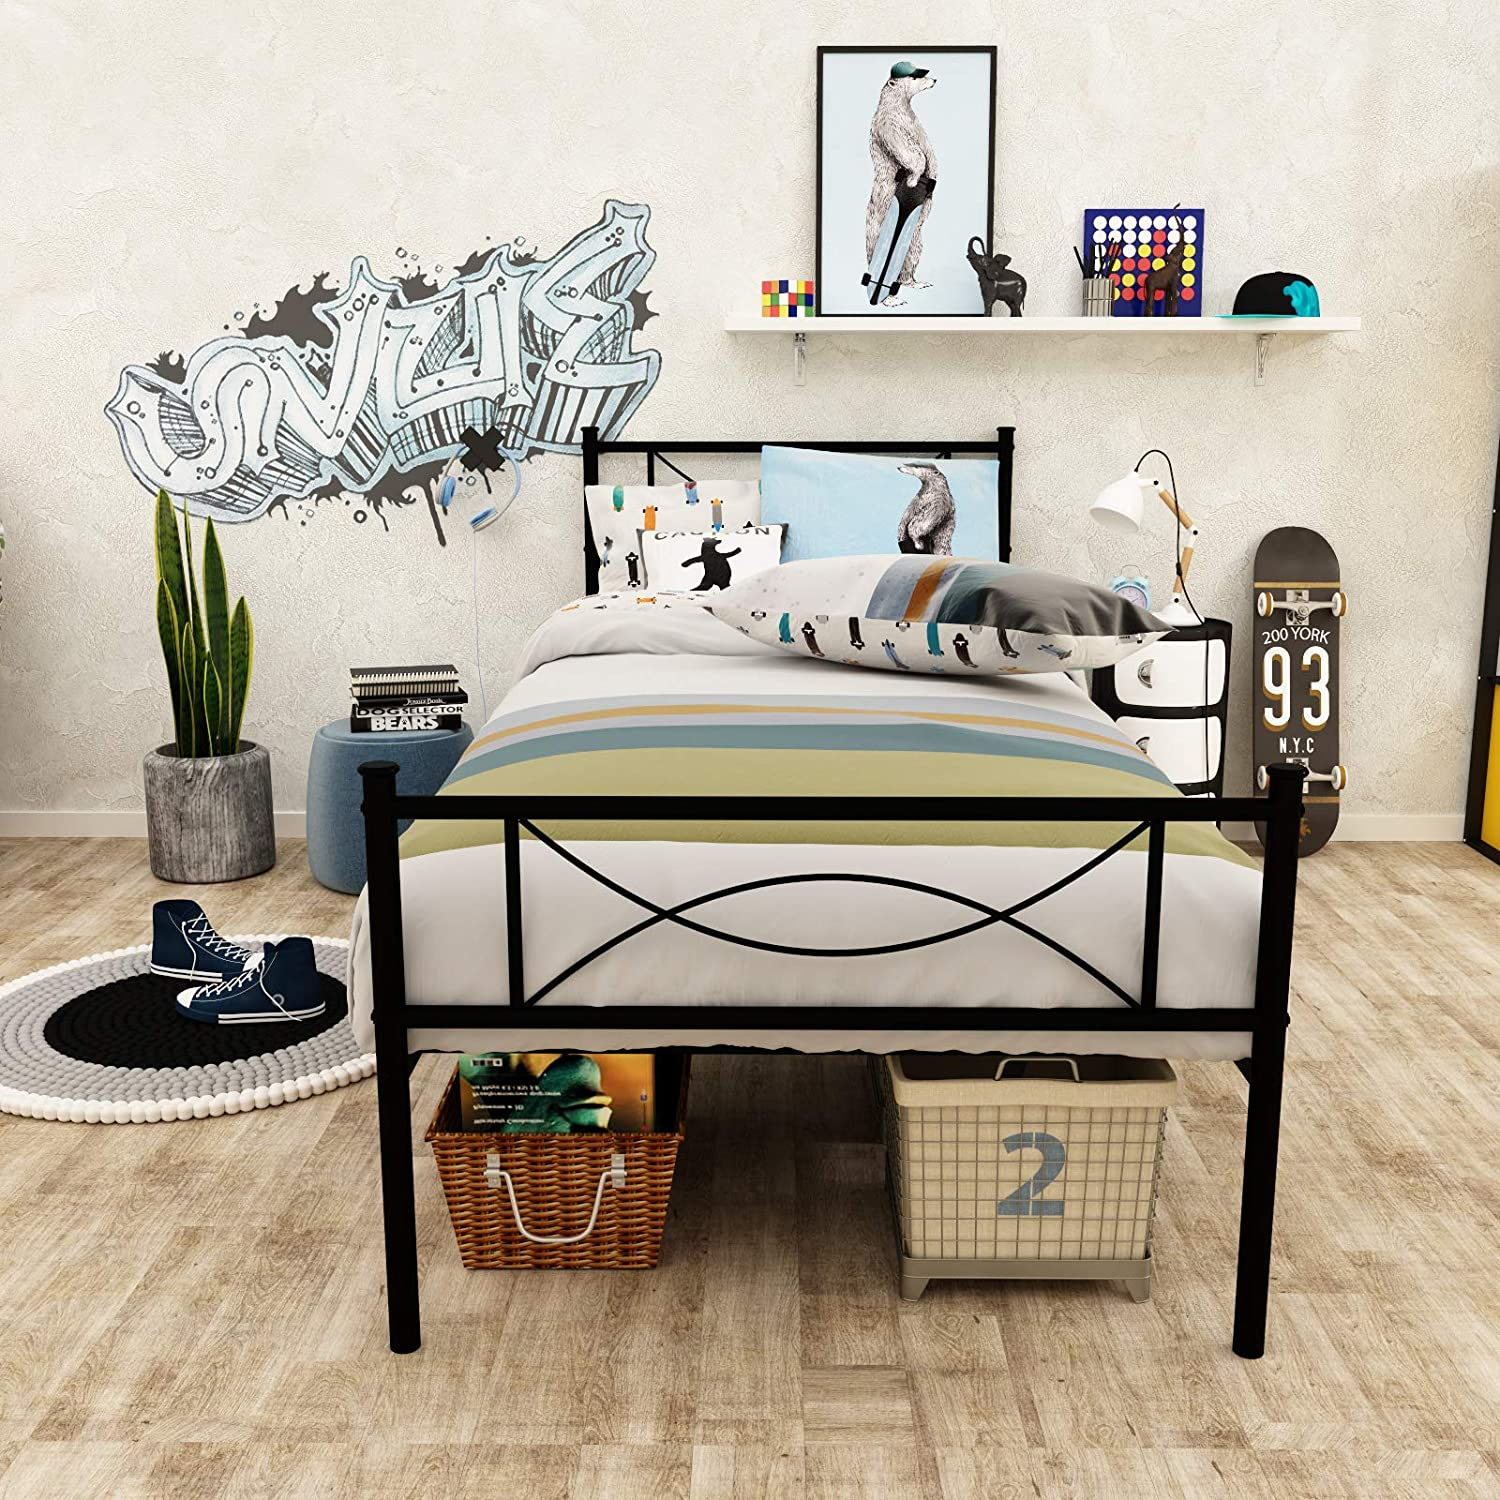 SimLife Metal Twin Platform Bed Frame with Two Headboards Kids Girls Boys Adults Mattress Foundation Stable Metal Slats Support Box Spring Replacement, Black